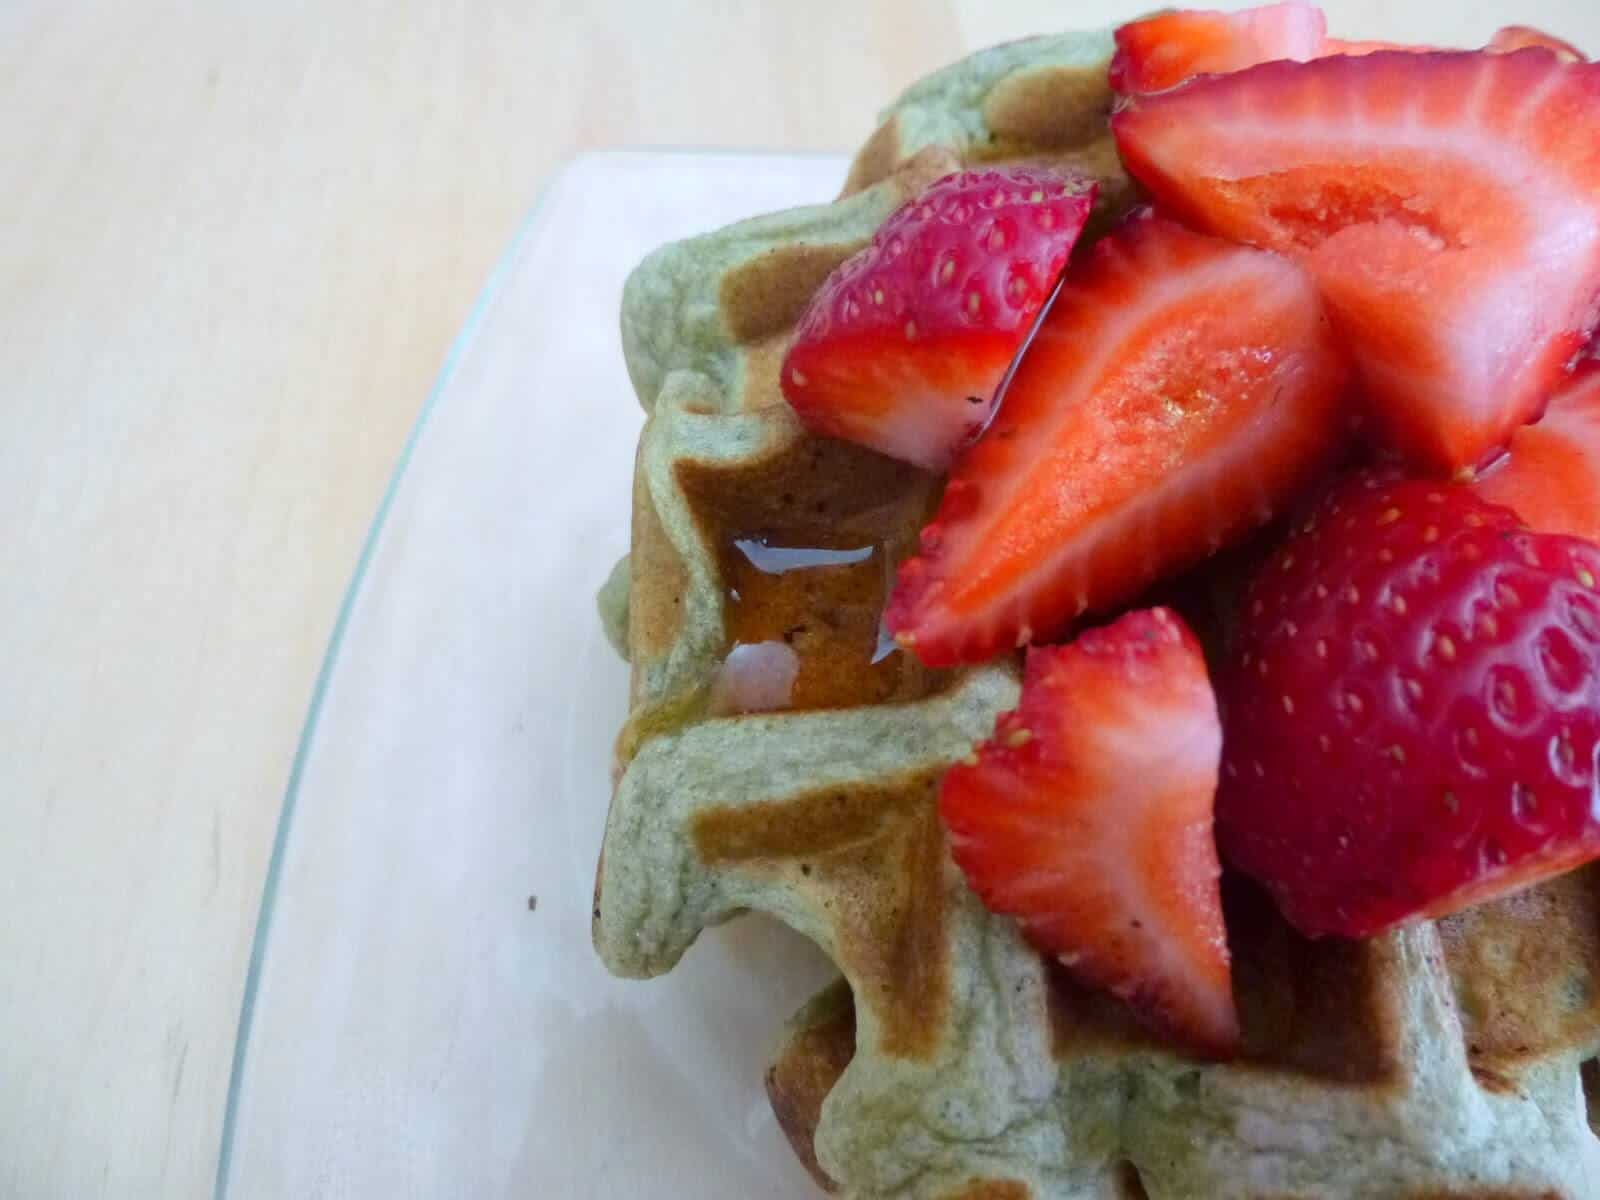 Top these matcha waffles with plenty of strawberries and maple syrup. #matcha #waffles #breakfast #brunch